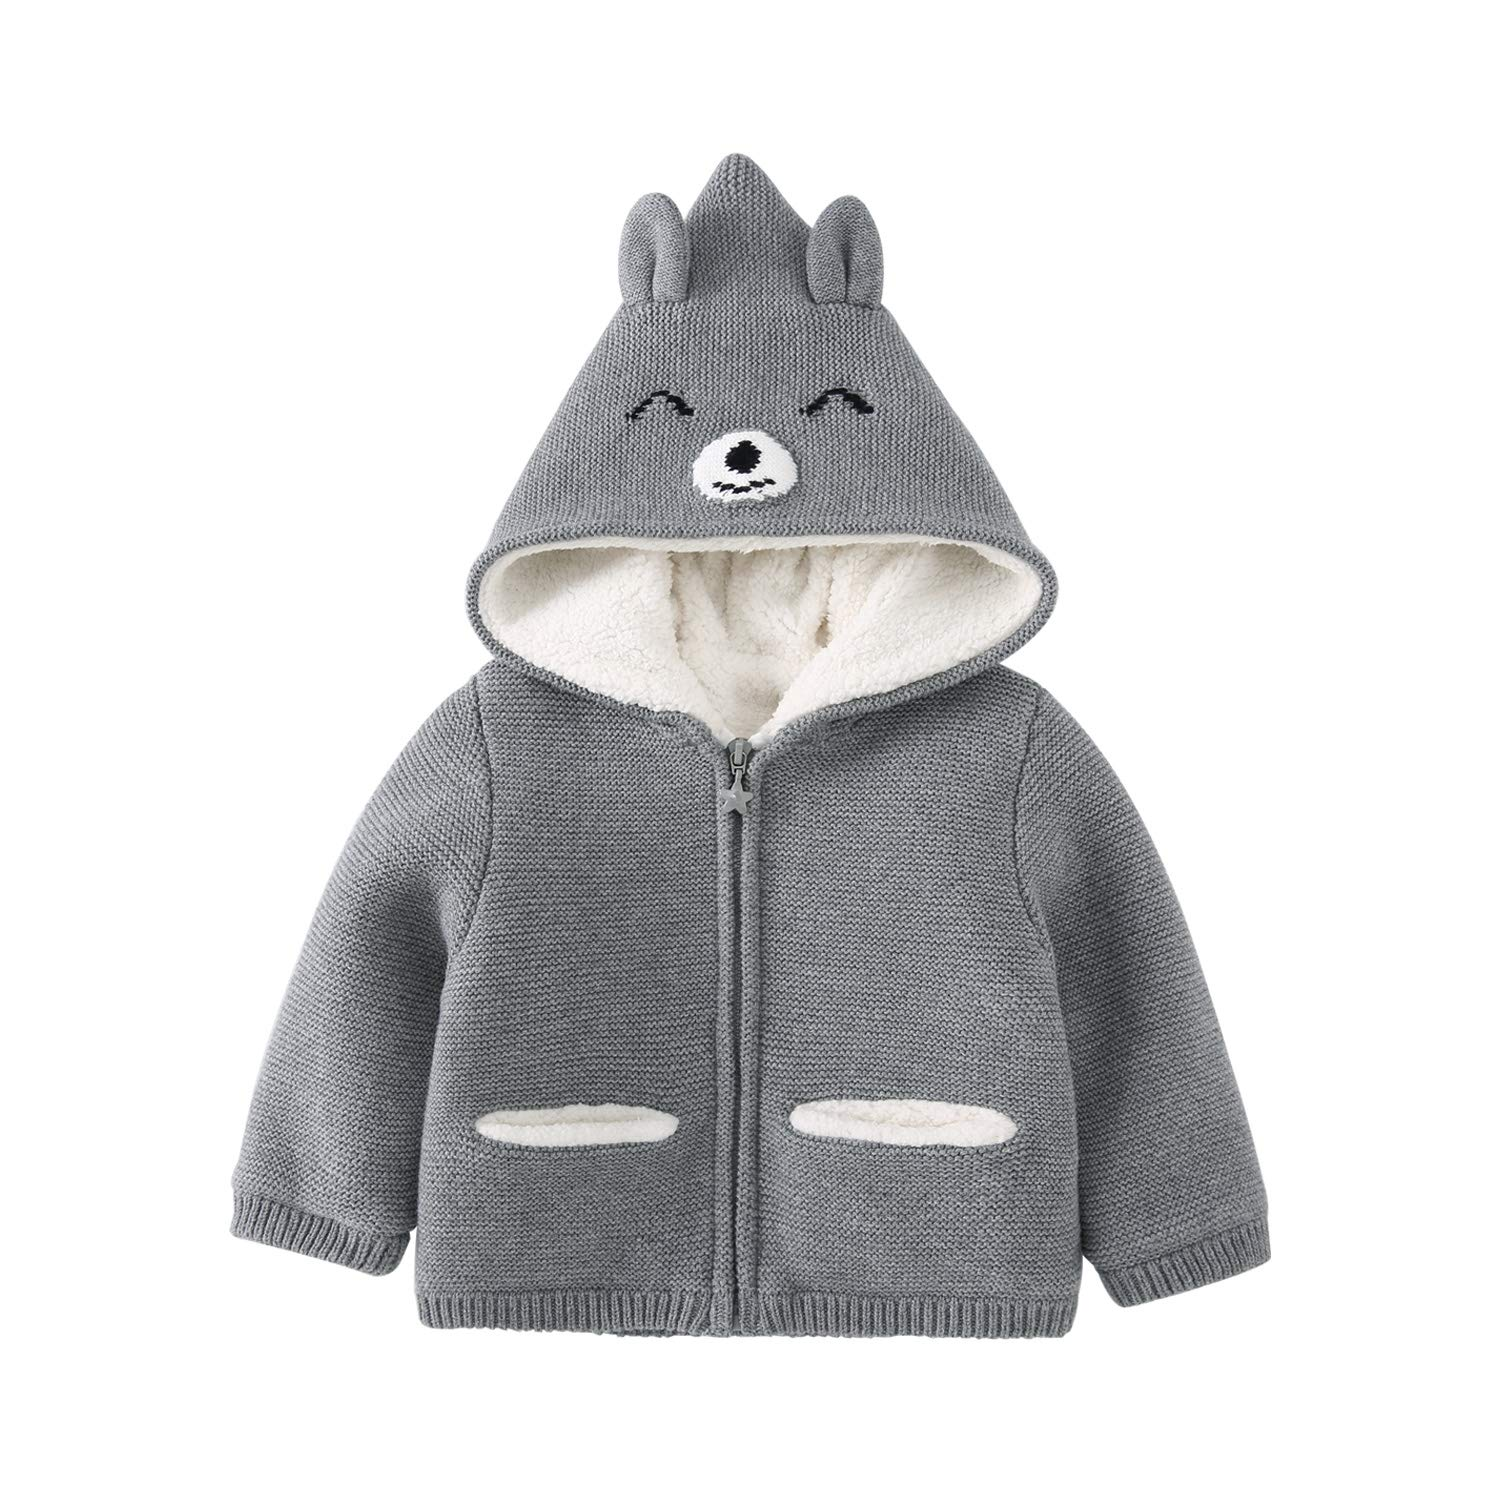 pureborn Toddler Baby Boy Hooded Cartoon Bear Zip-Up Sweater Jacket with Plush Lining Gray 2-3 Years by pureborn